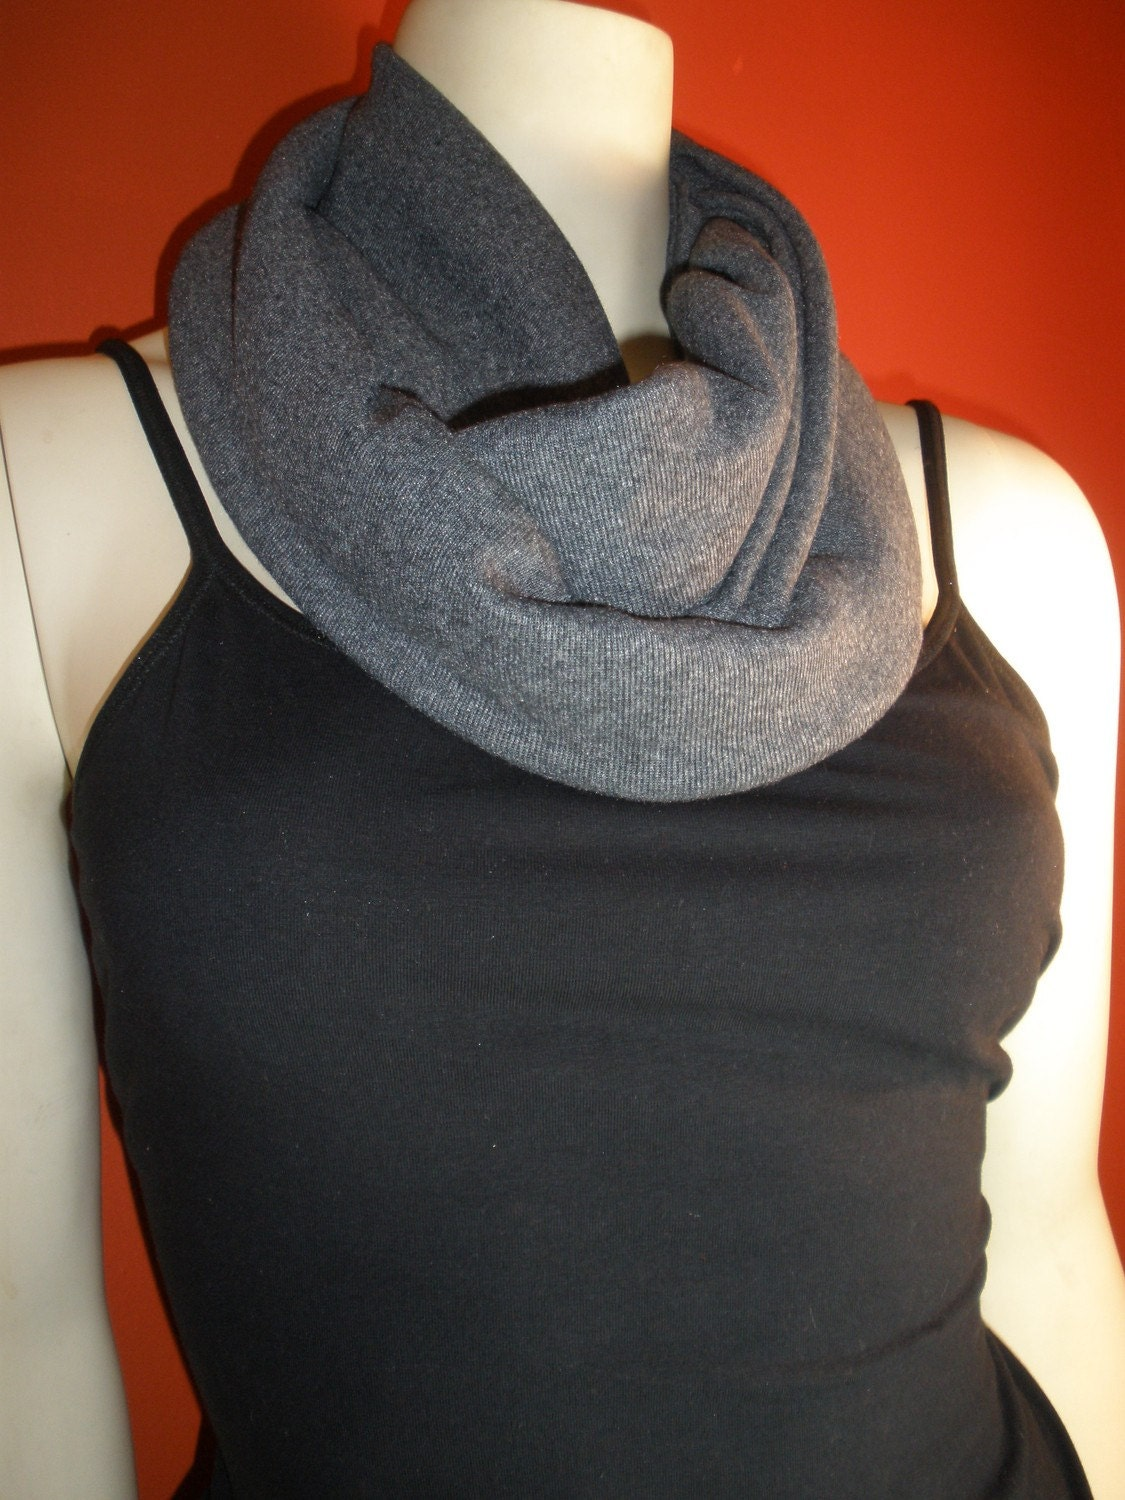 Fabulous Neck and Head Scarf Wrap For a Women or a Men